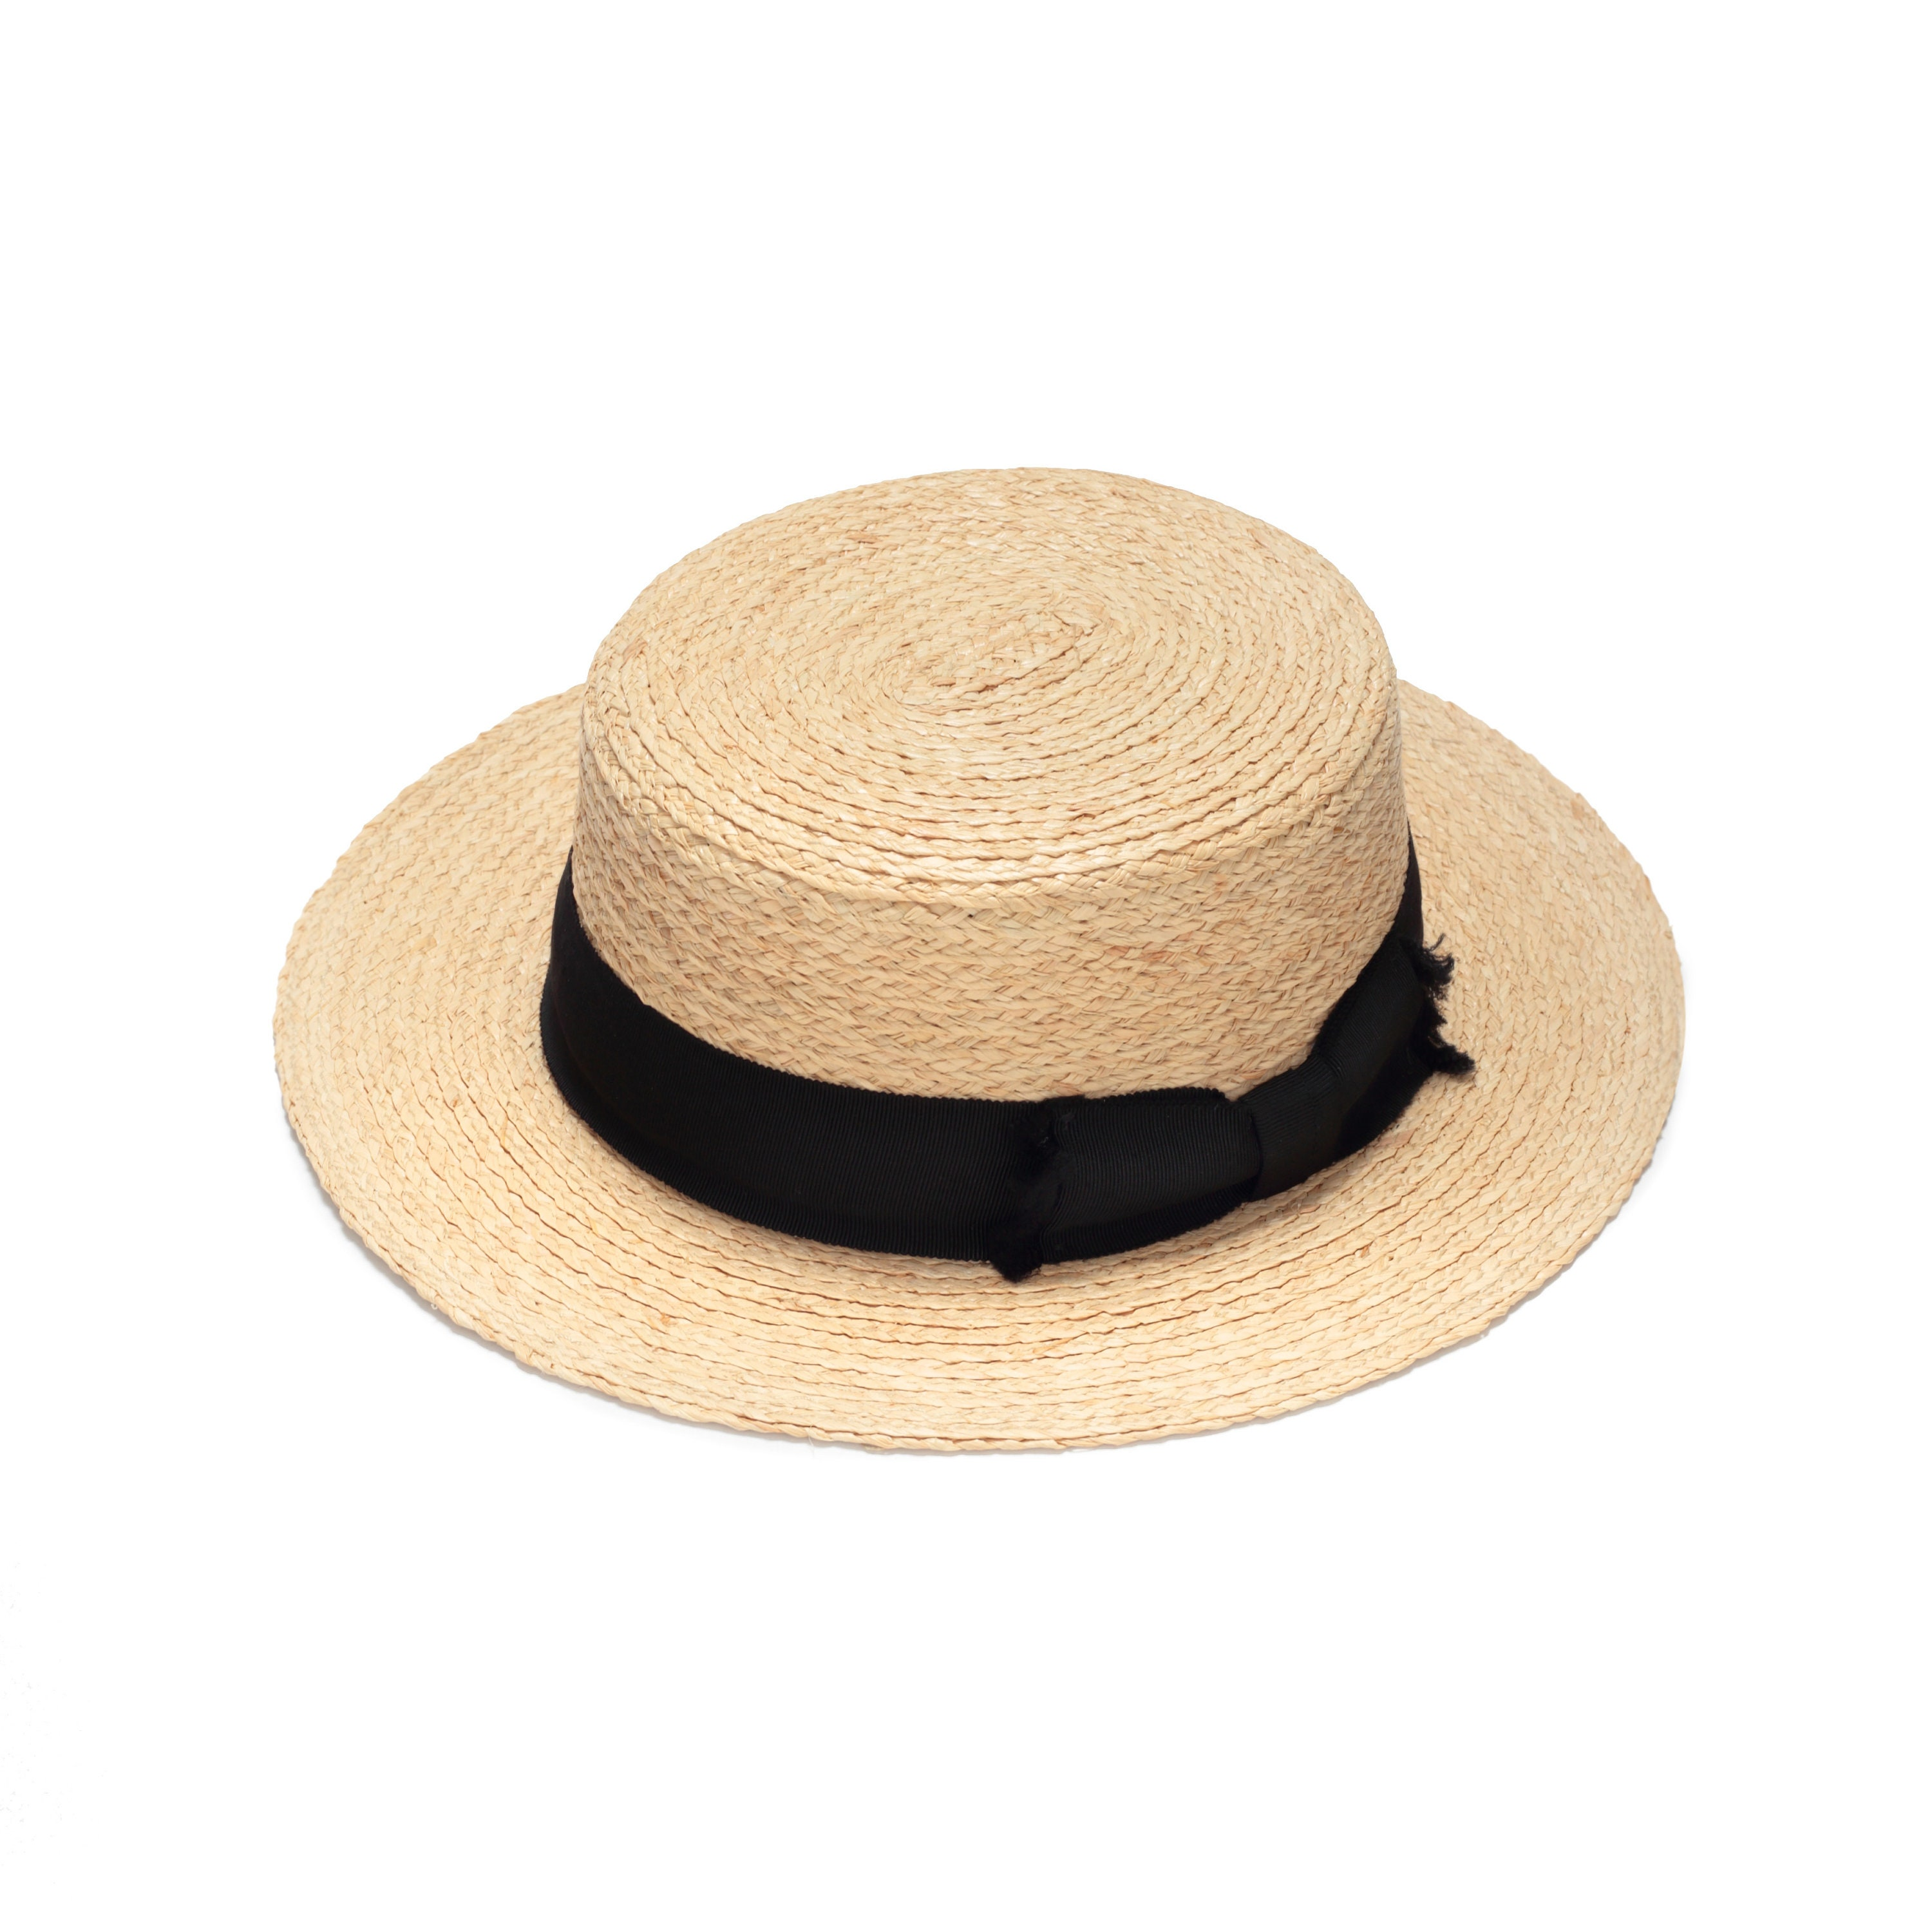 Classic boater hat with decorative black band hat for women  86eeb7ecb17